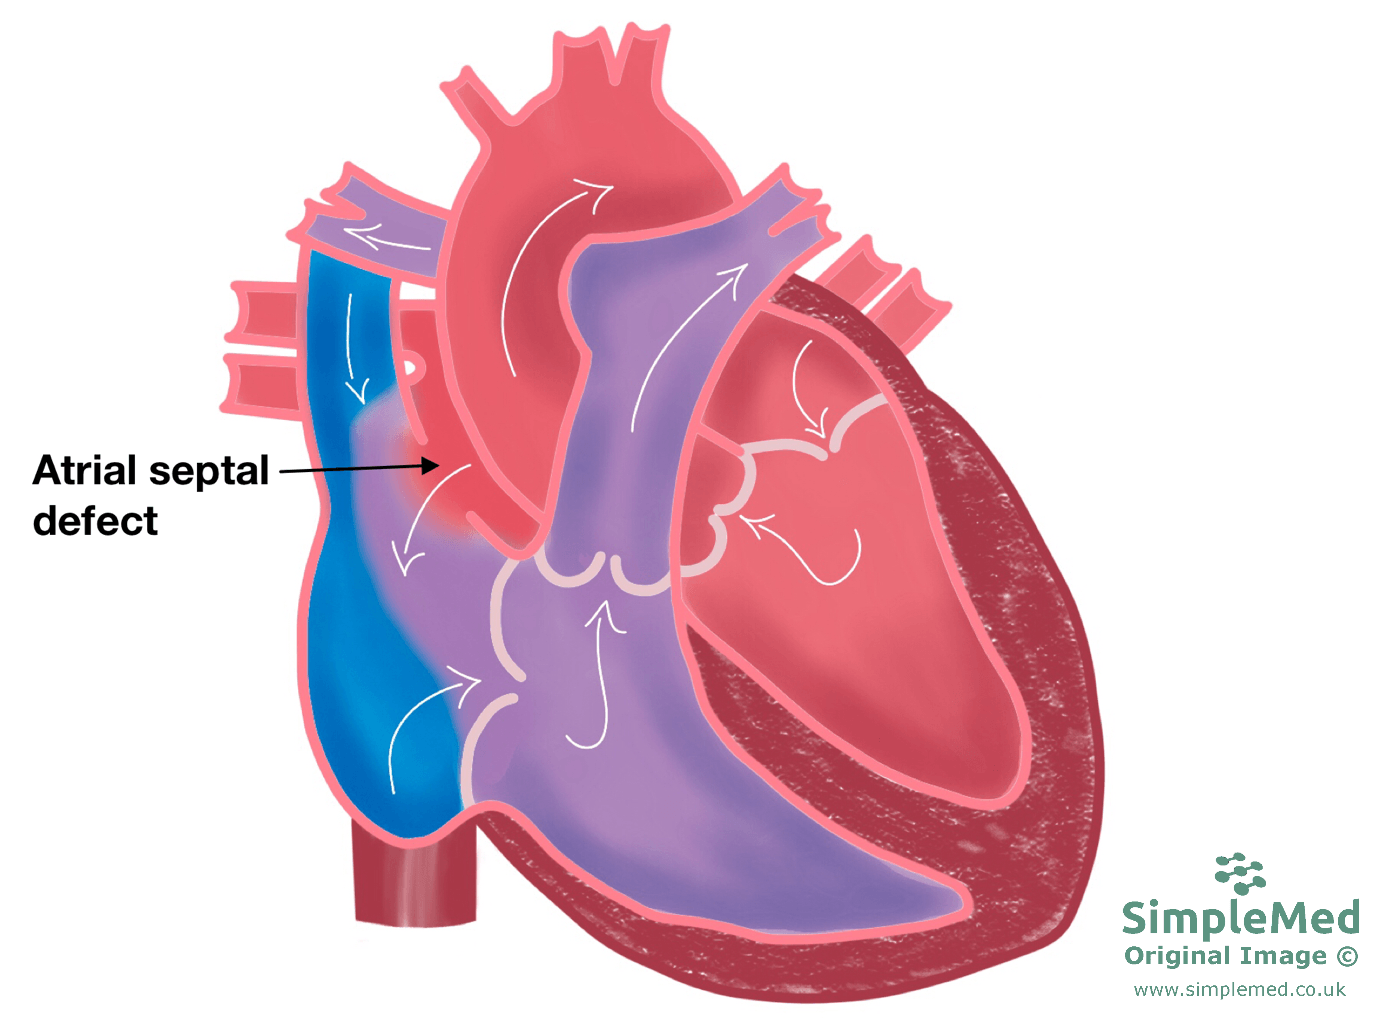 Atrial Septal Defect SimpleMed